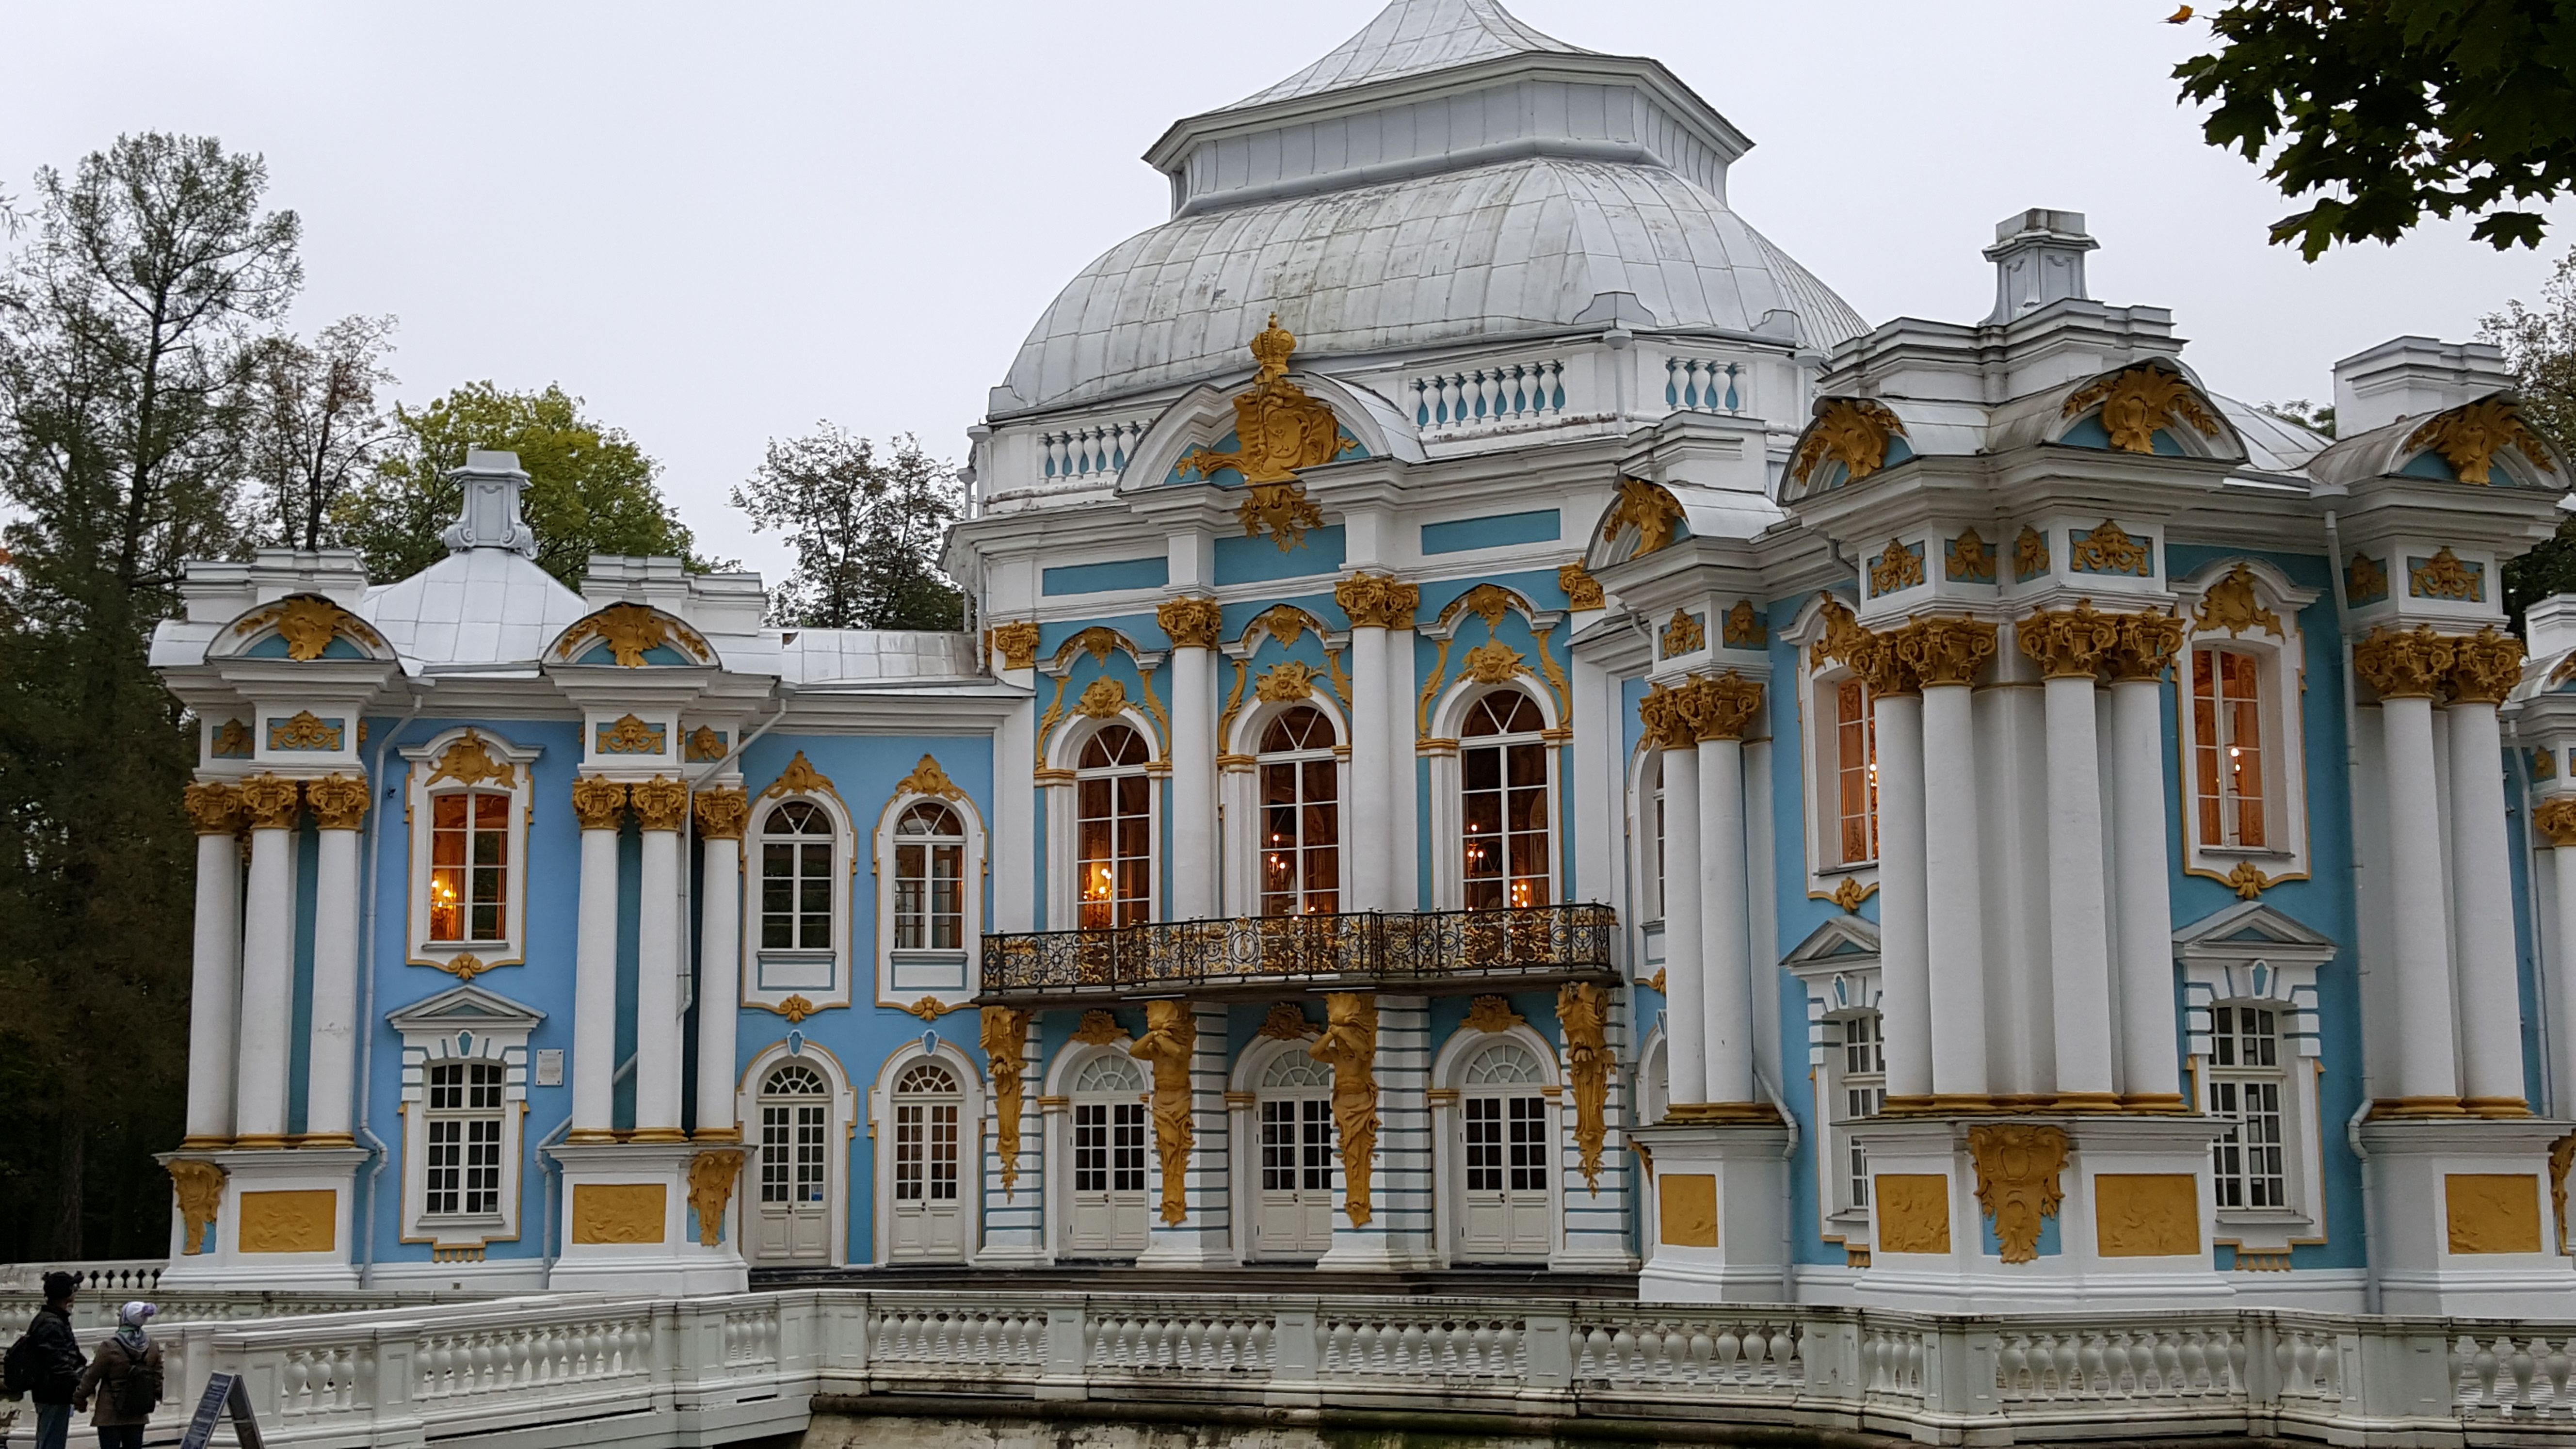 Hermitage Pavilion at Catherine Palace